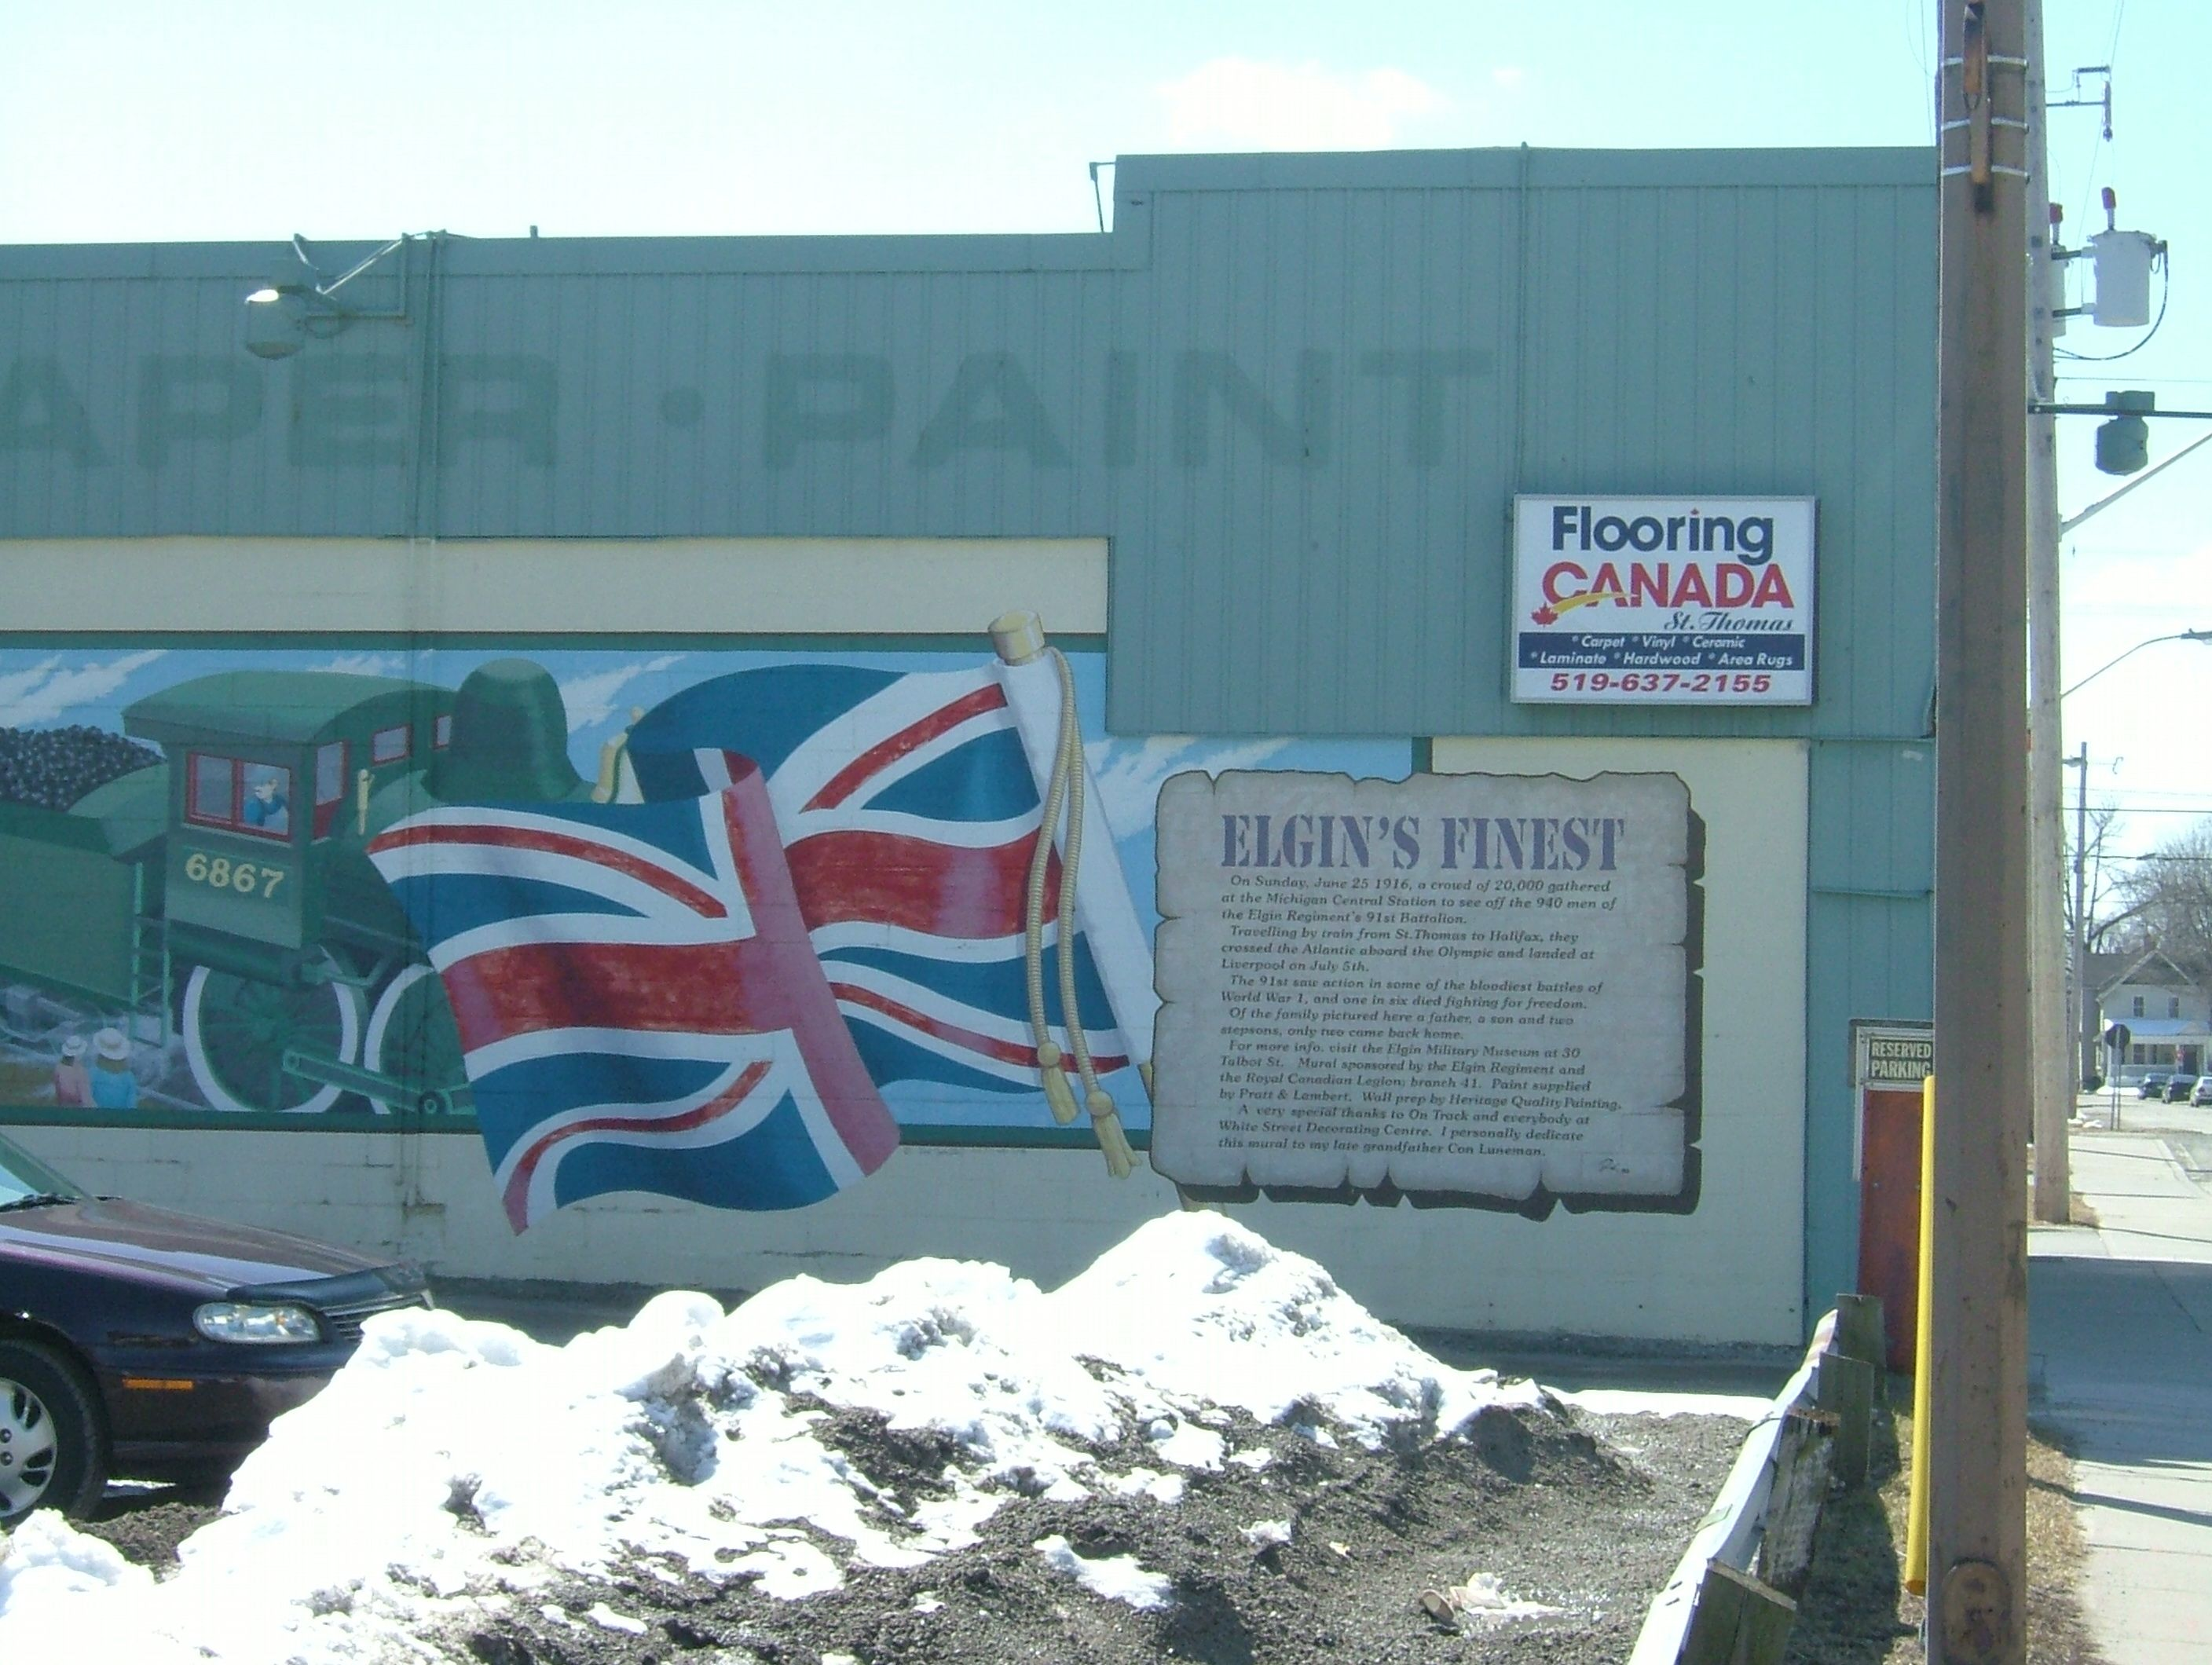 Wall Mural Building In St. Thomas Ontario 2019